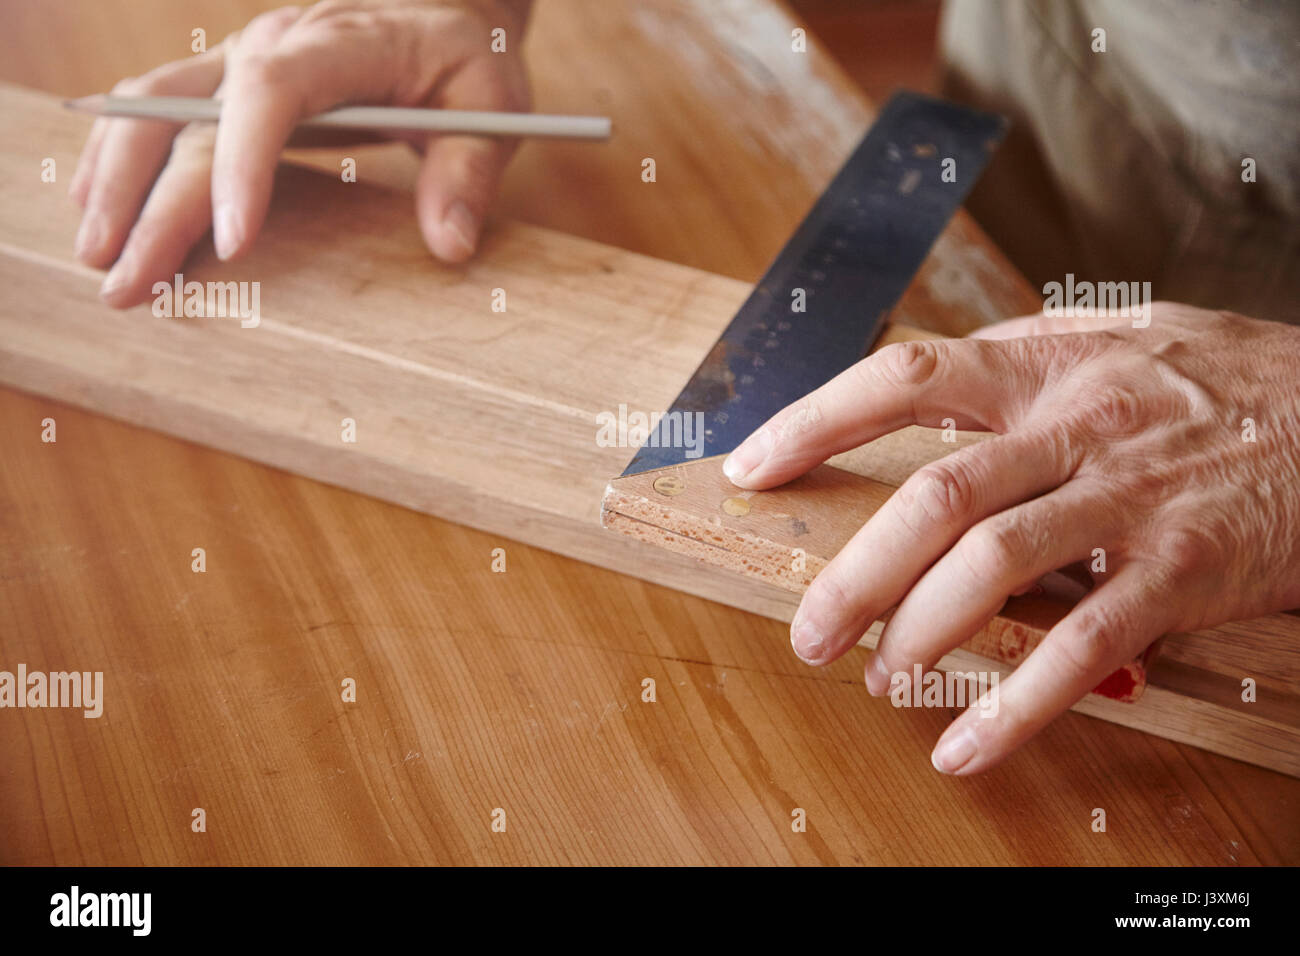 Hands of male carpenter using set square at workbench - Stock Image